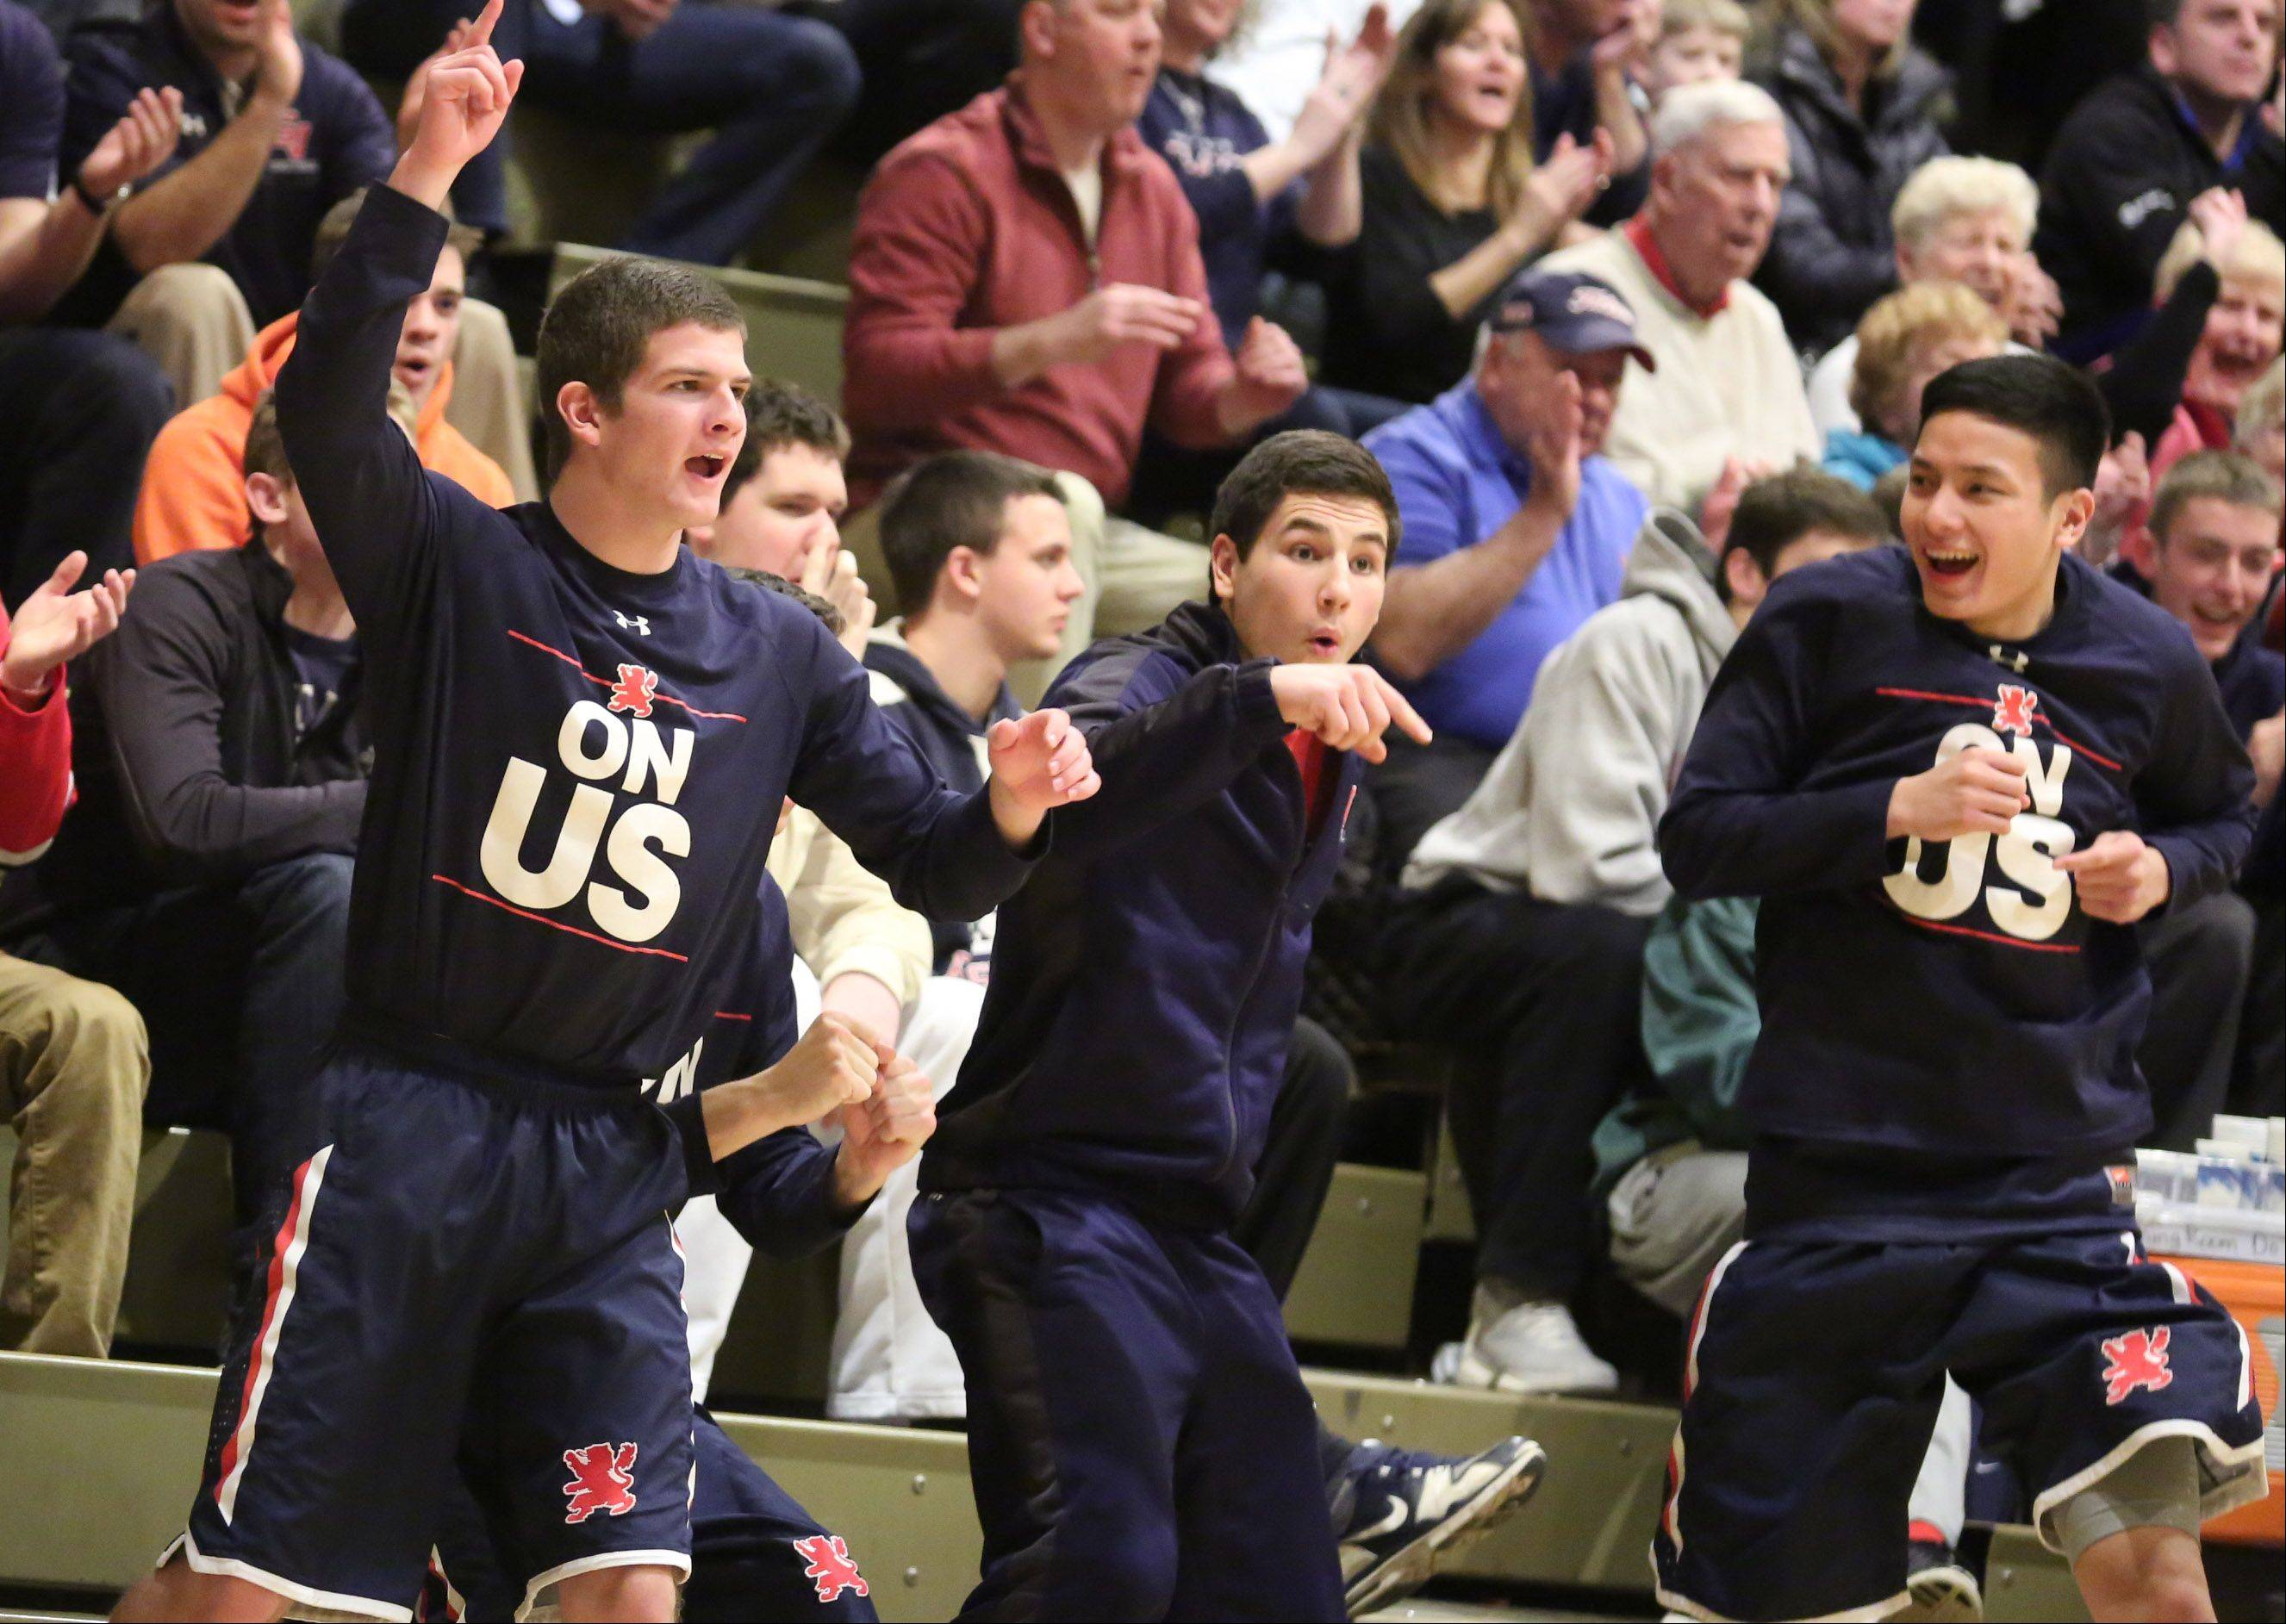 St. Viator players celebrate a three-point shot against Prospect at the Wheeling Hardwood Classic on Friday.